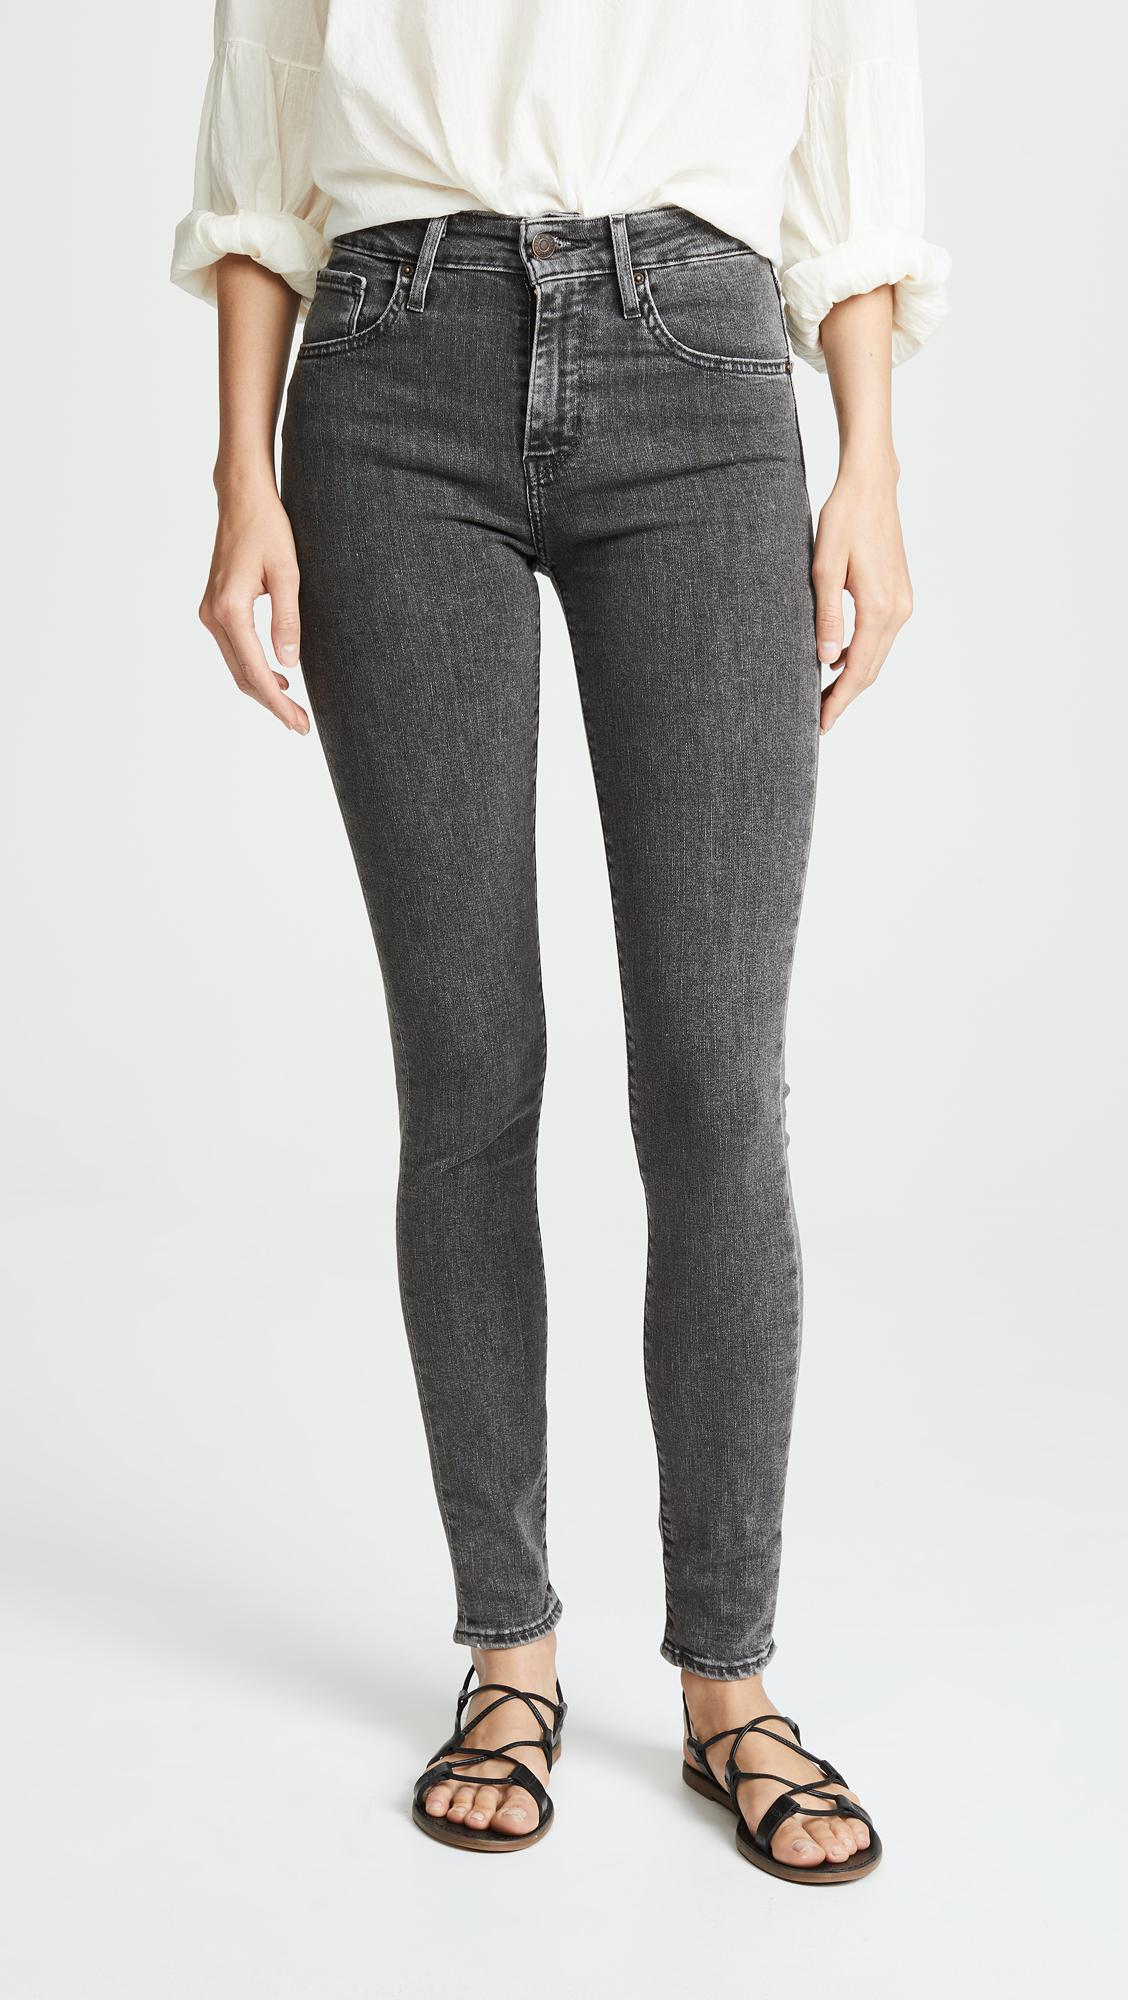 Levi's 721 Black High Jeans Rise In Lyst Skinny wBSwv